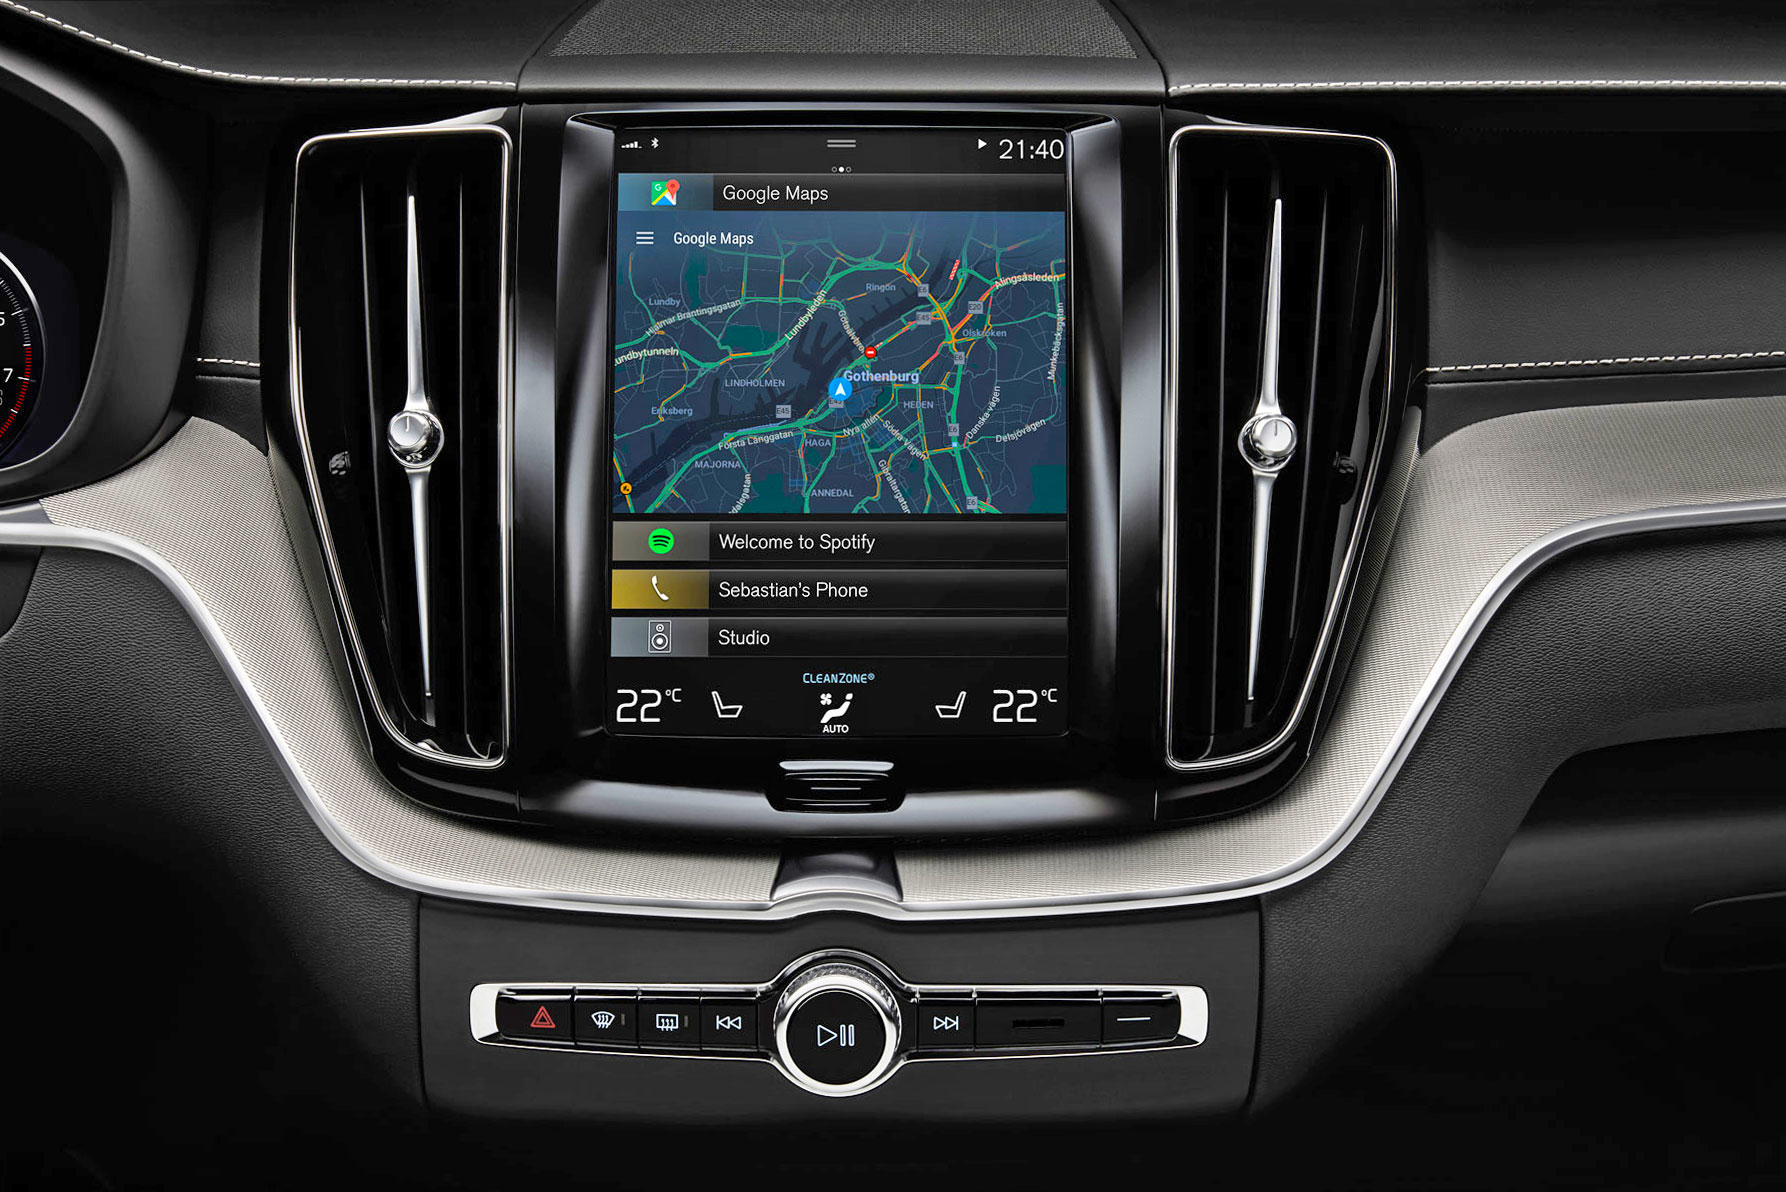 Volvo Teams up with Google to Integrate Android into next generation connected cars